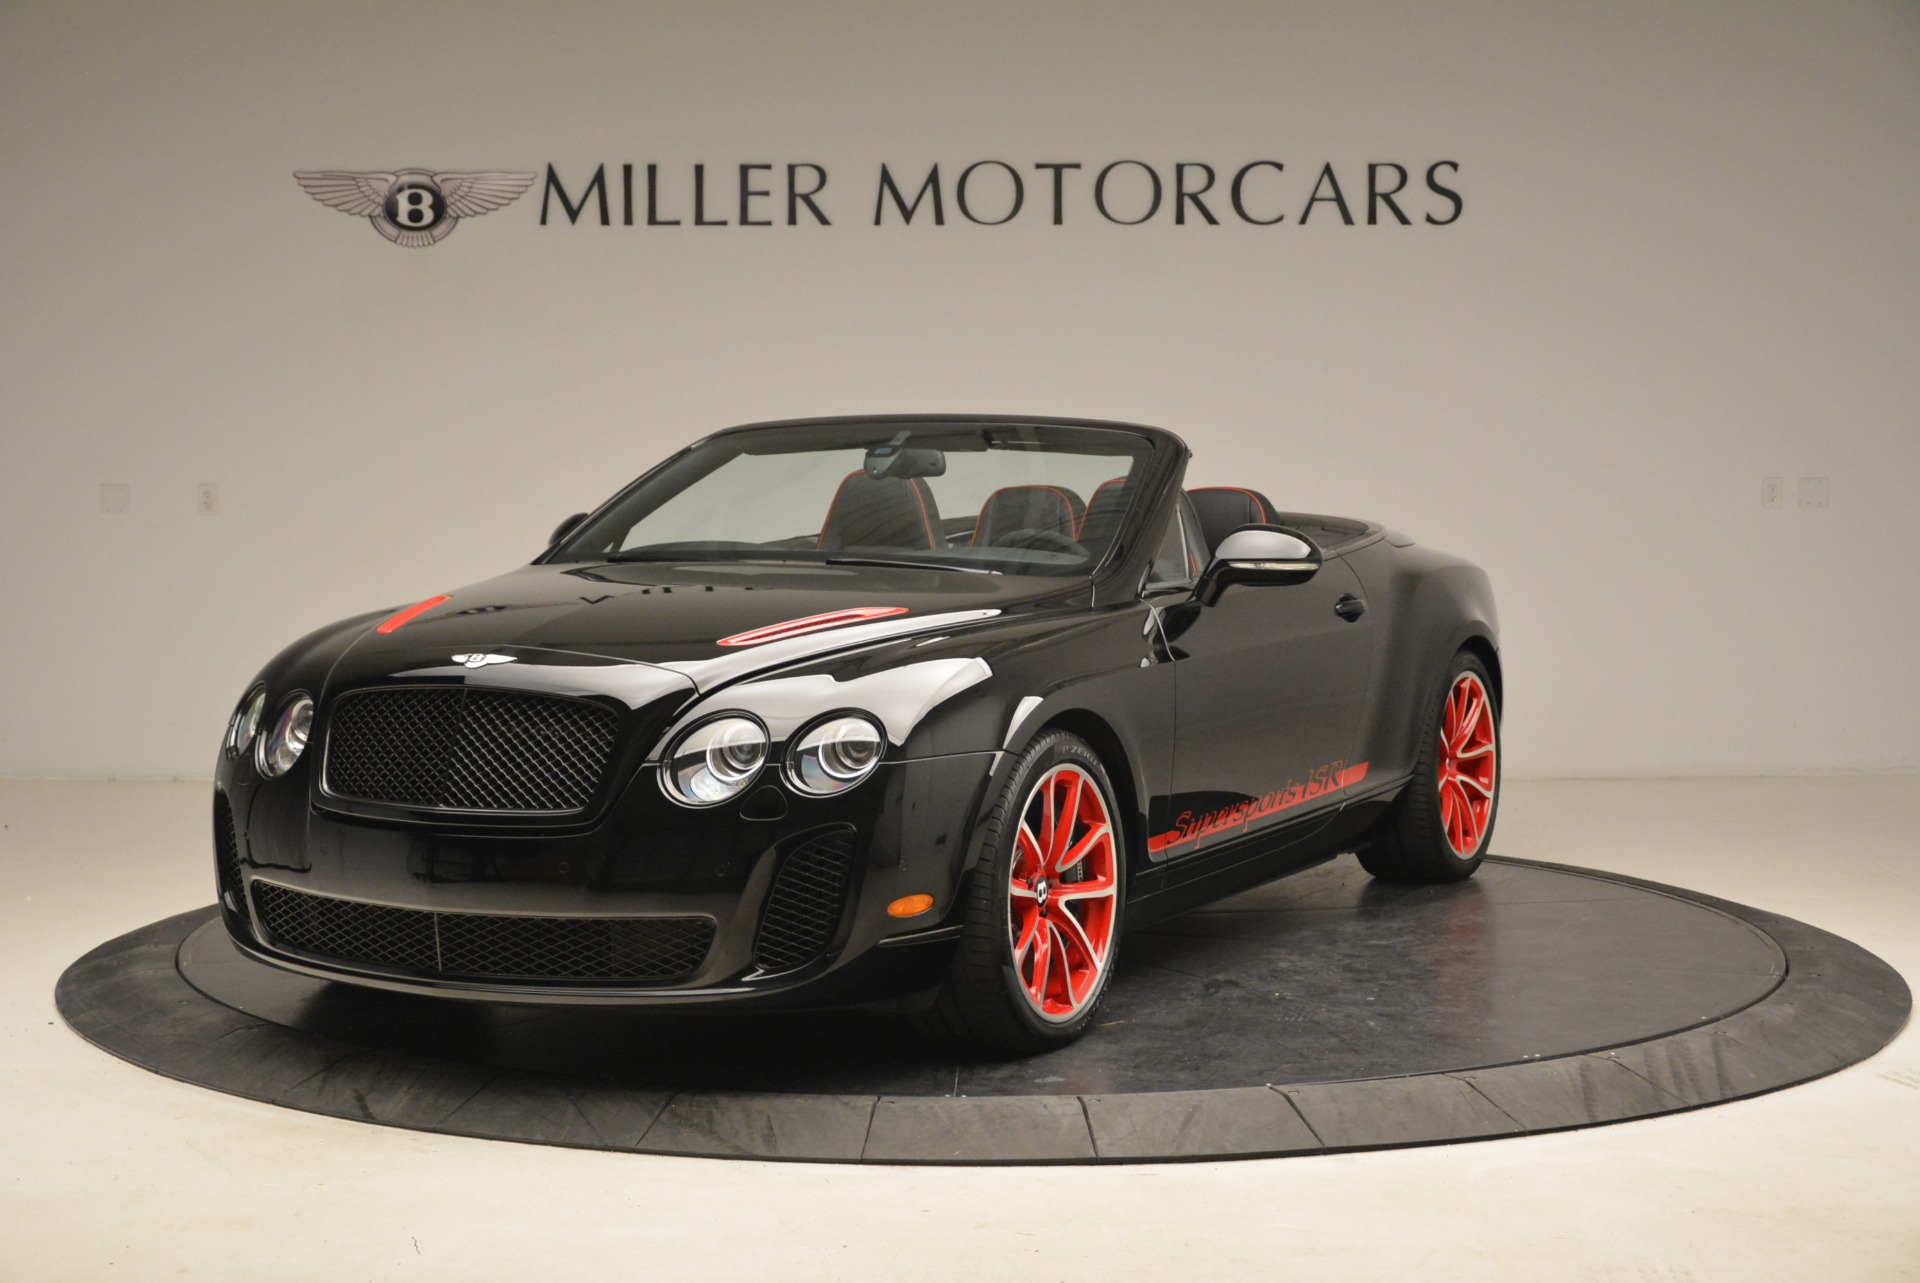 Used 2013 Bentley Continental GT Supersports Convertible ISR for sale Sold at Bentley Greenwich in Greenwich CT 06830 1